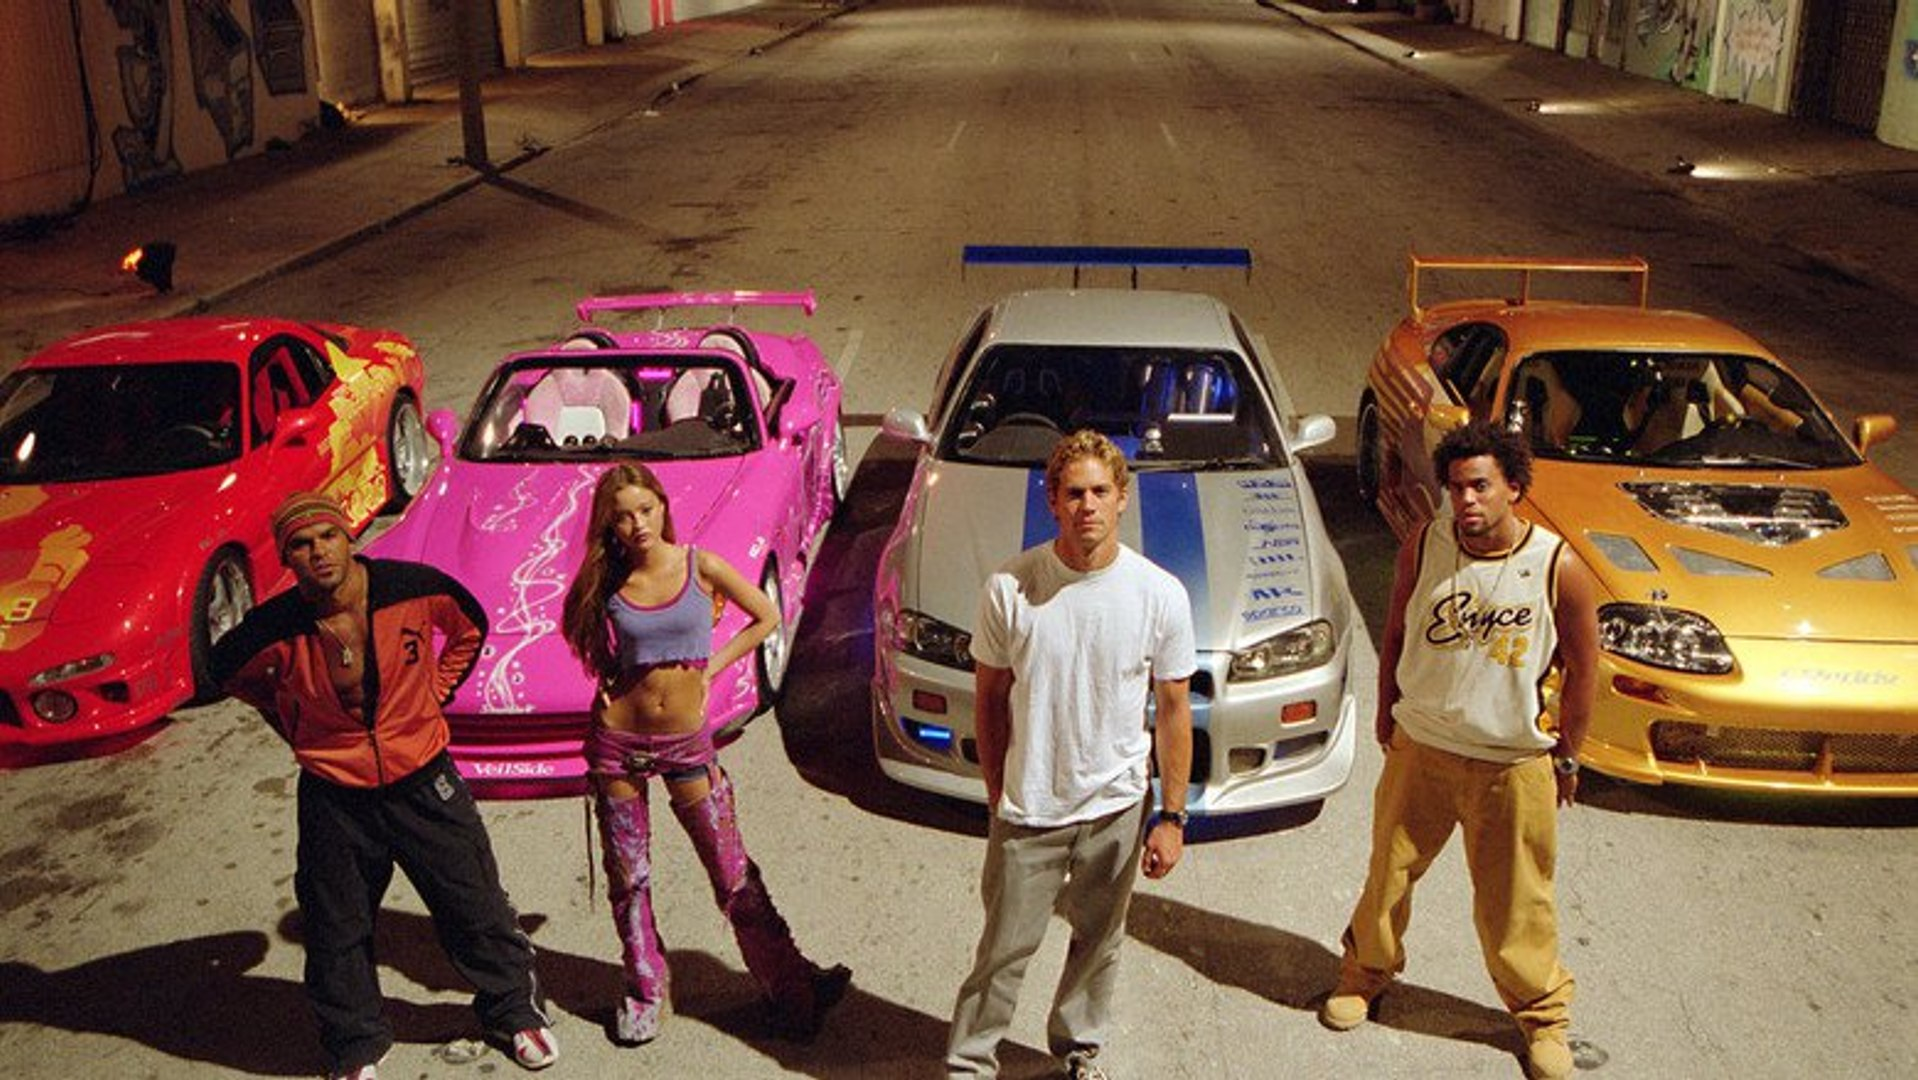 2 Fast 2 Furious 2003 Full Movie Video Dailymotion